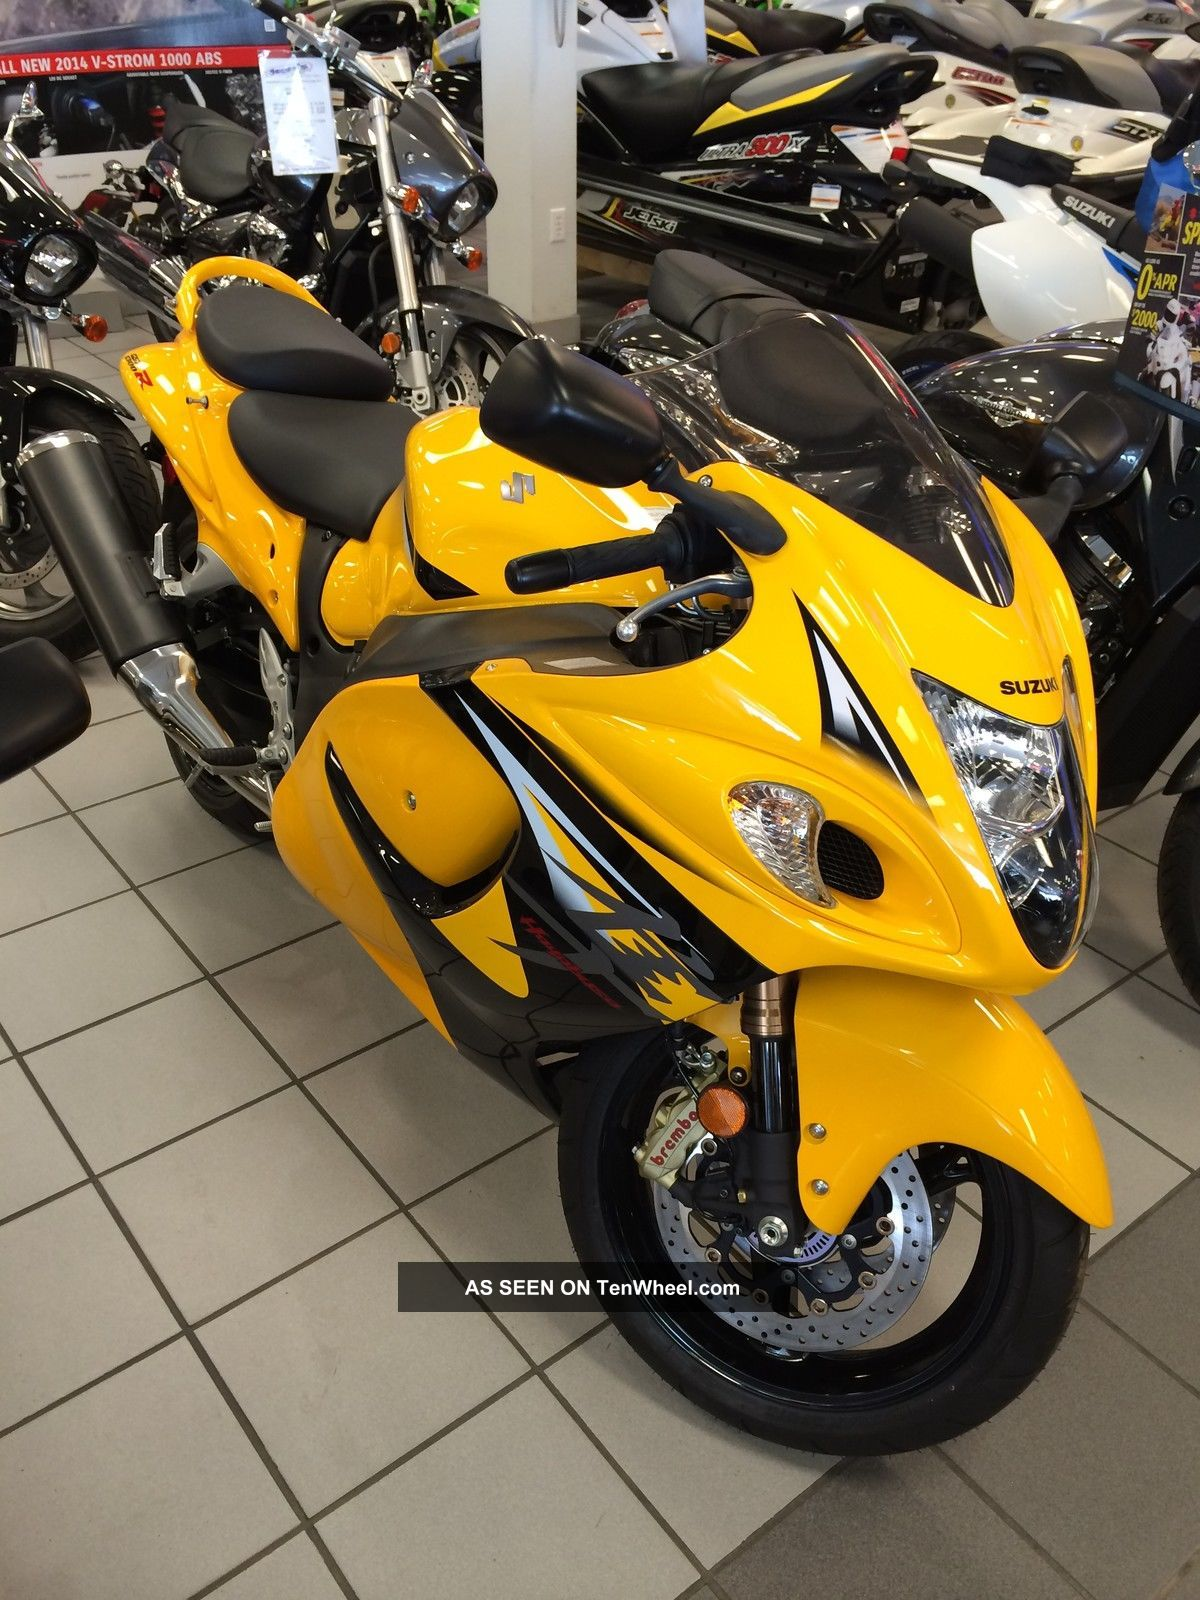 2013 Suzuki Hayabusa L.  E.  Yellow Gsx1300razl3 Hayabusa photo